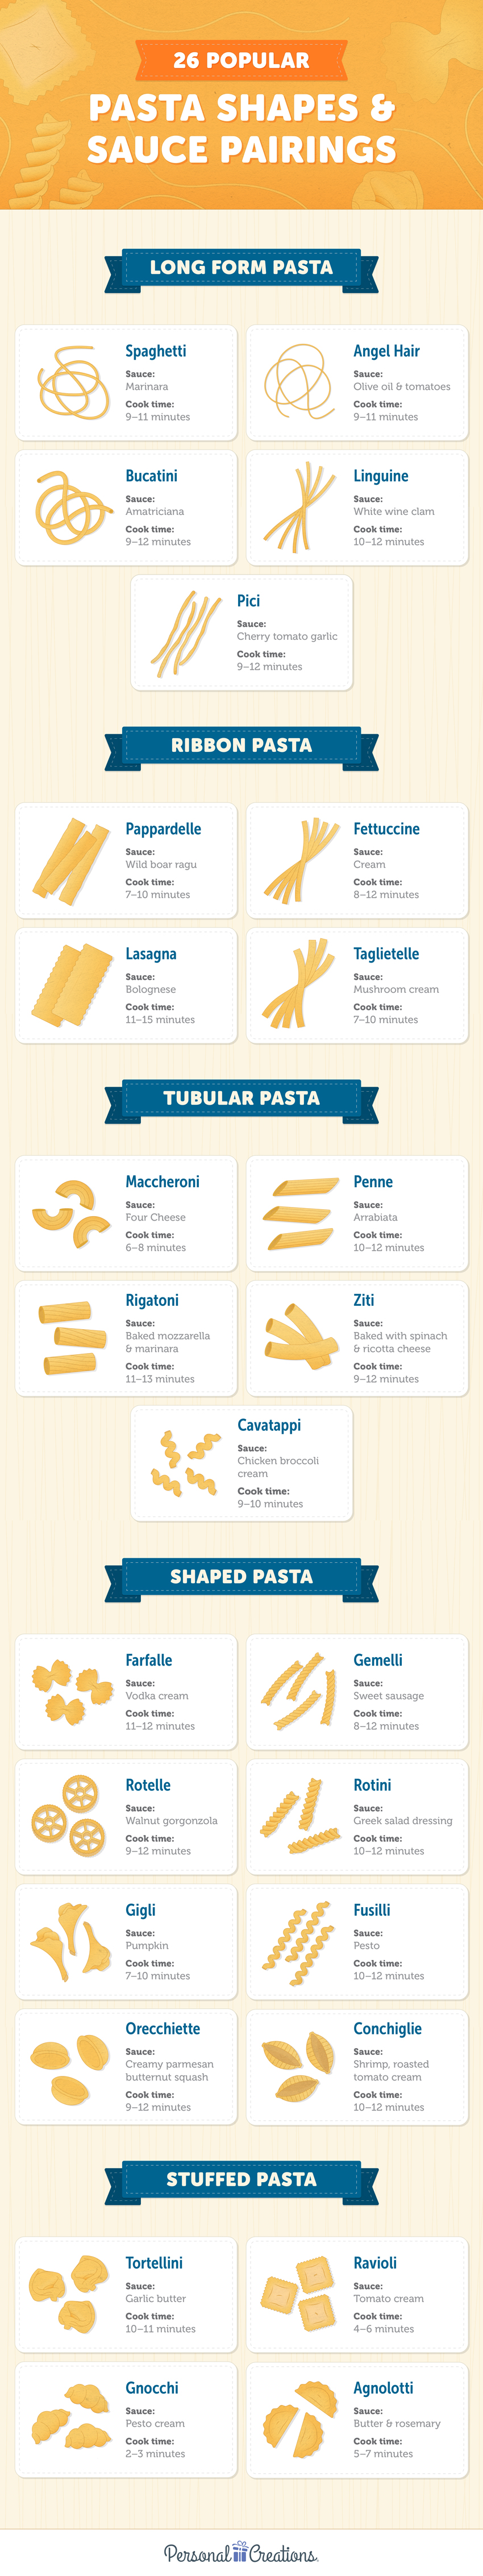 infographic over italiaanse pasta